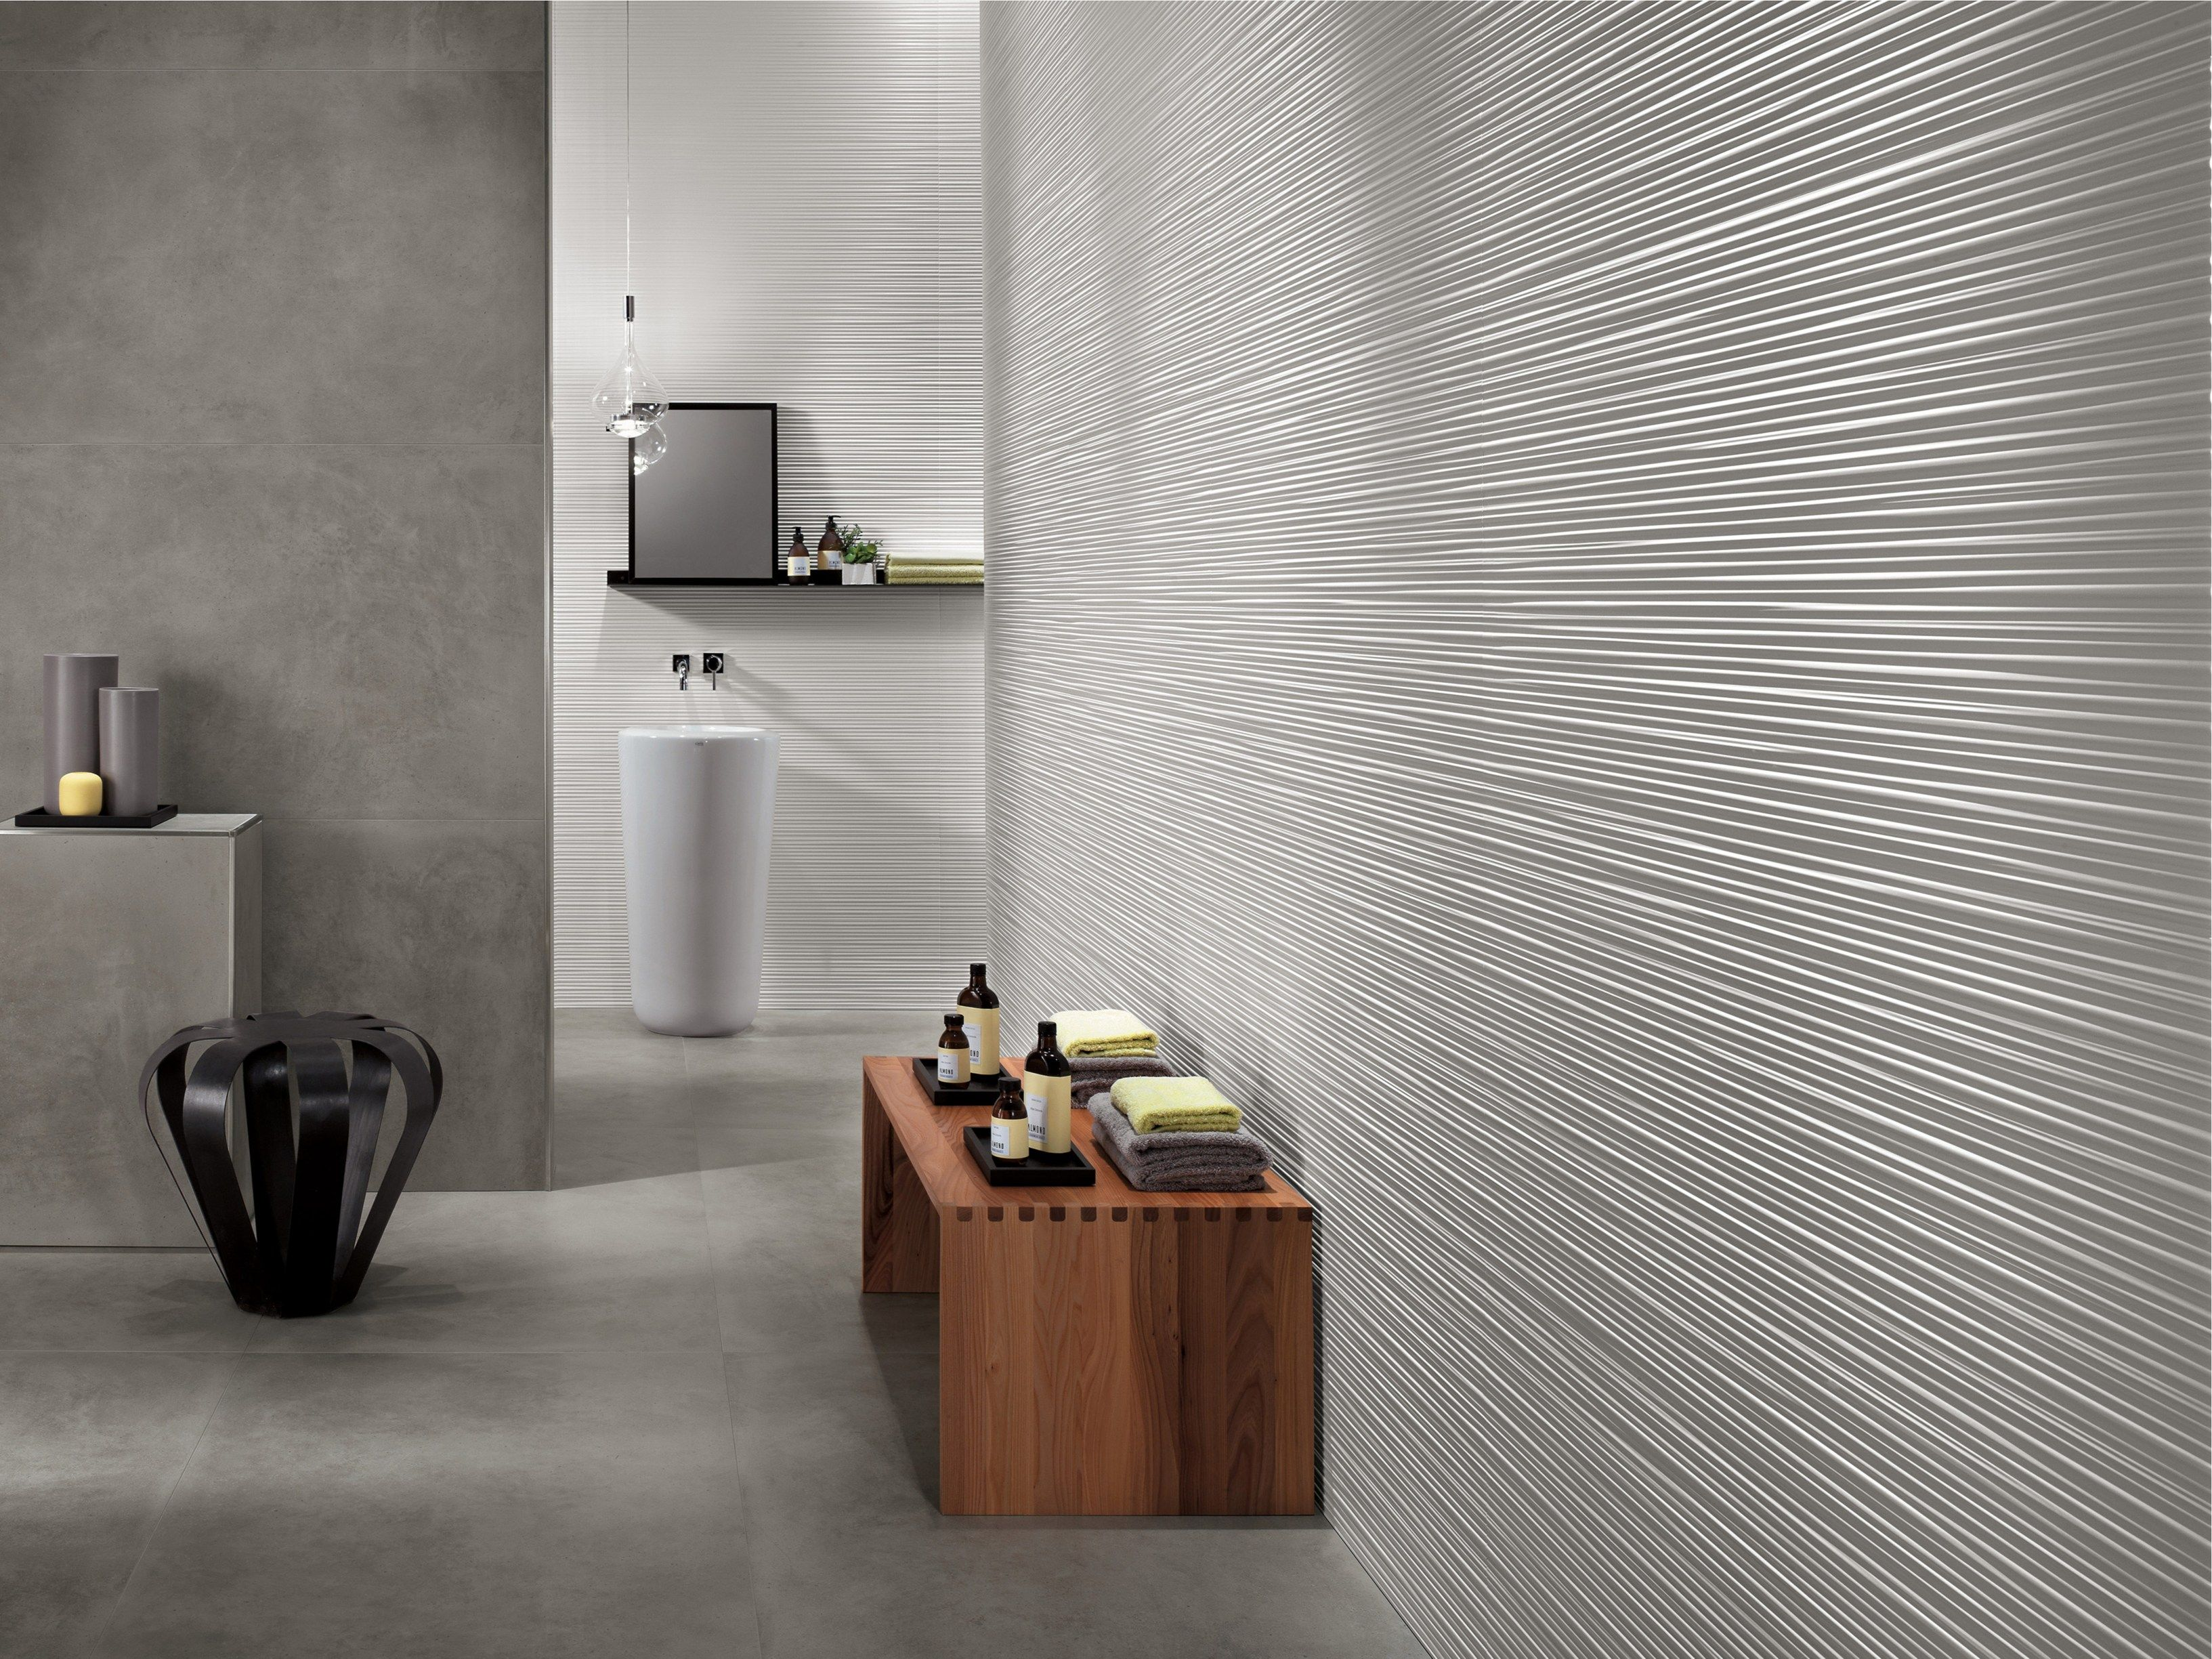 Revestimiento de pared 3d en pasta blanca para interiores for Ceramica para pared